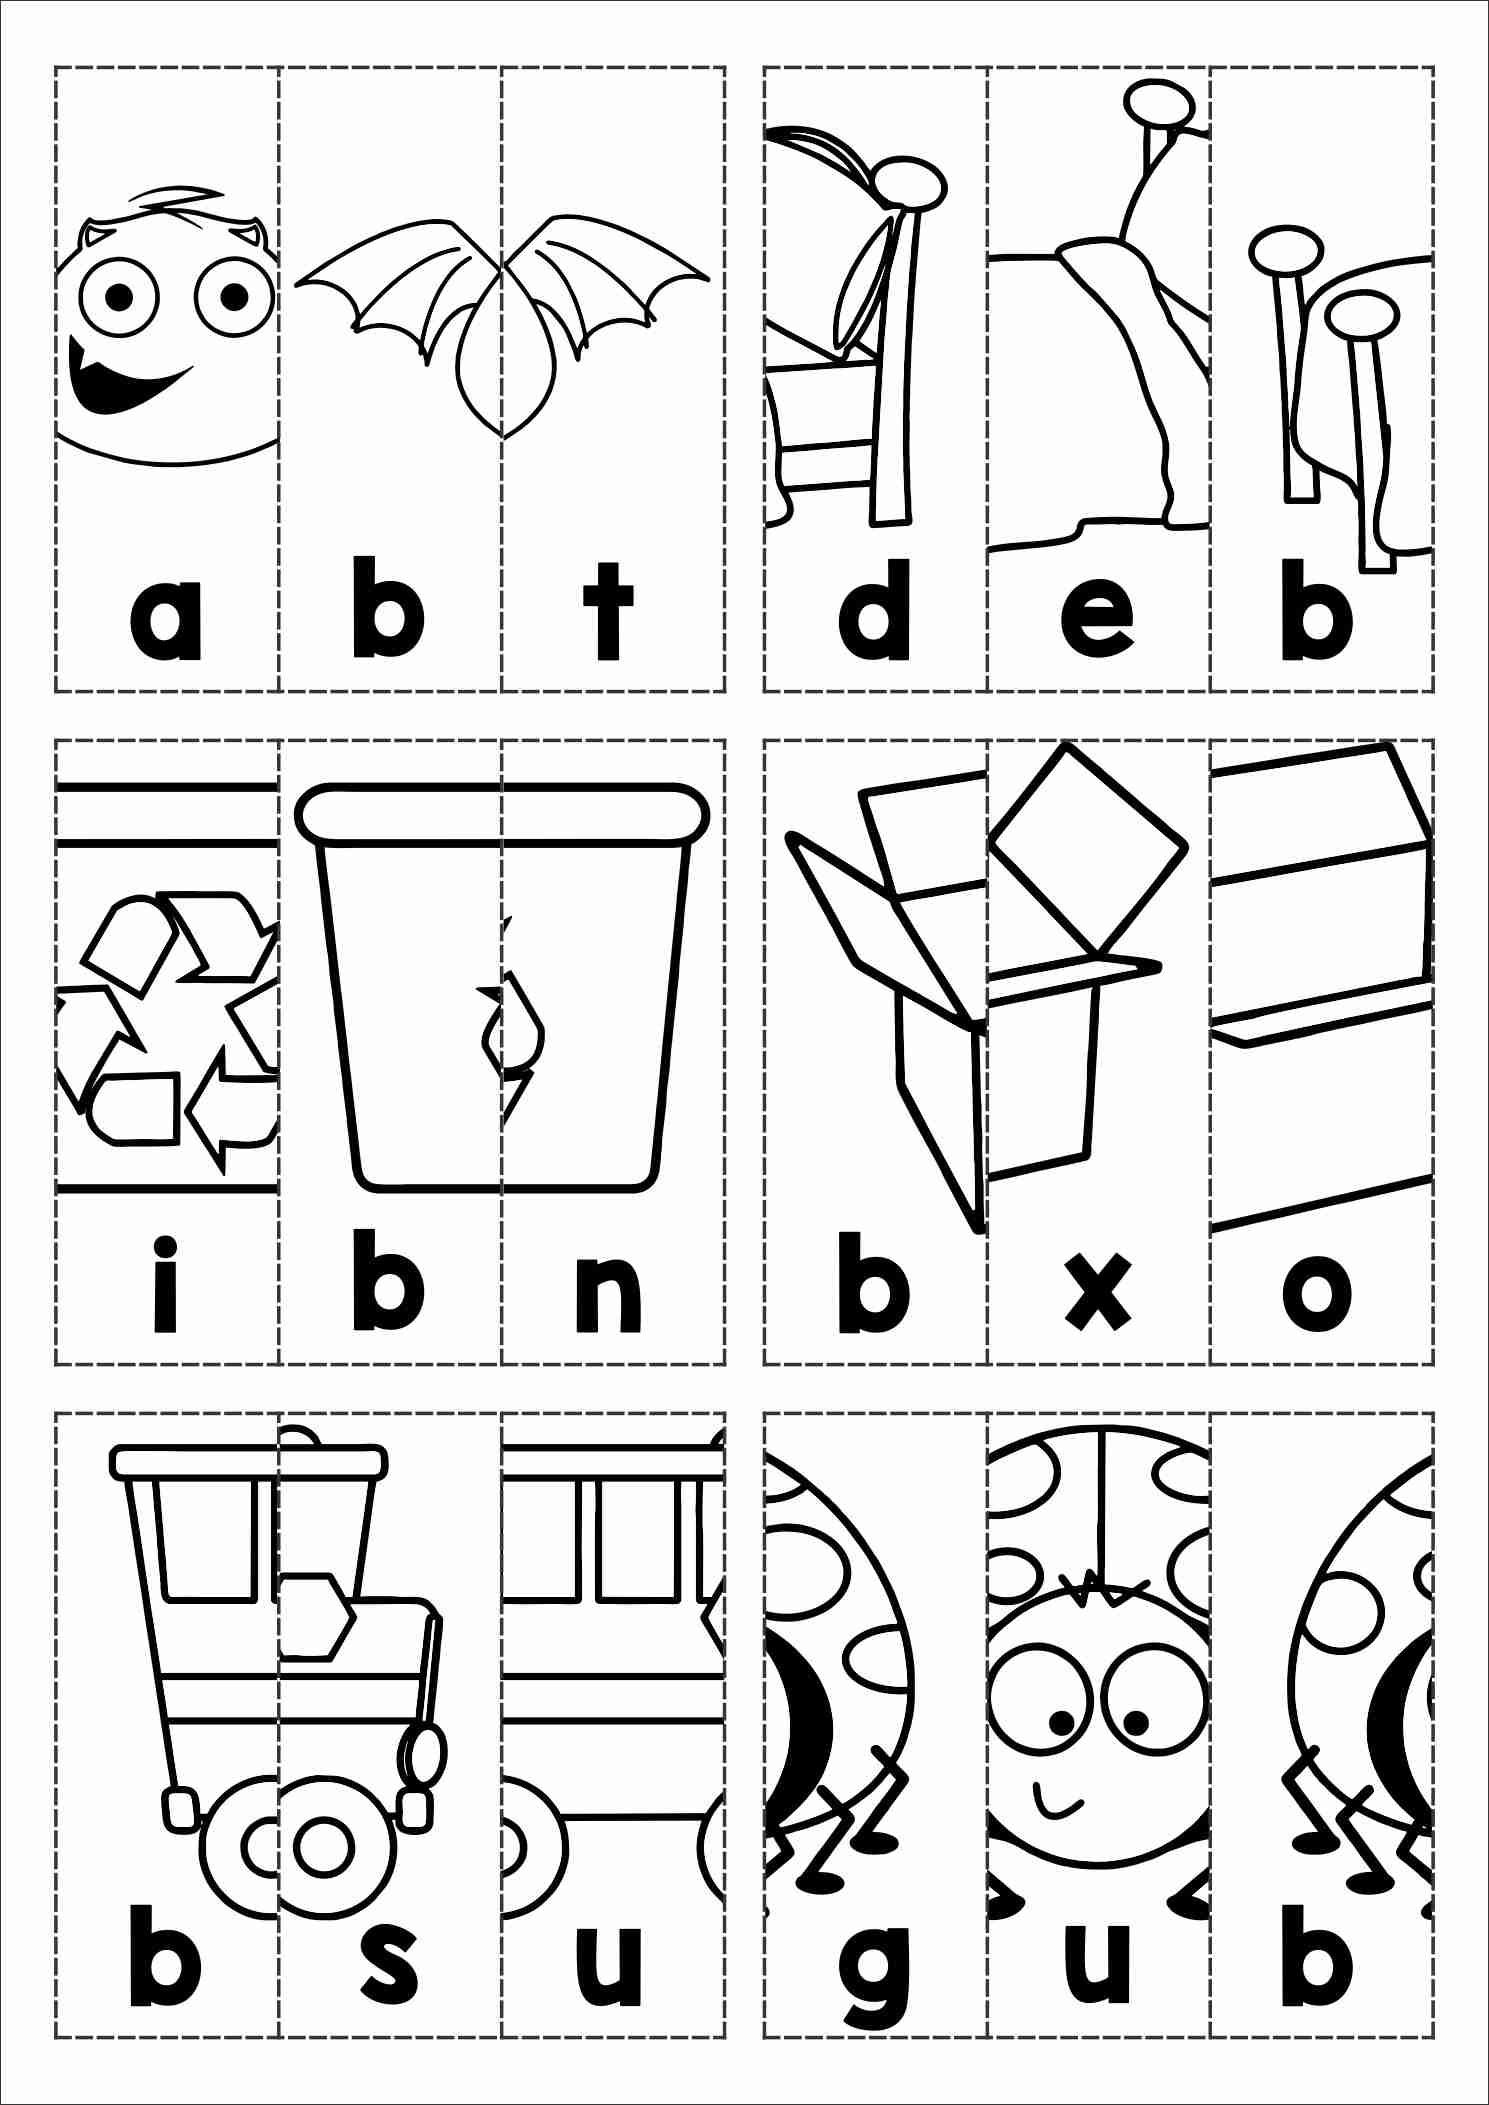 Free Picture Scramble Cut Paste Booklets For Word By Free